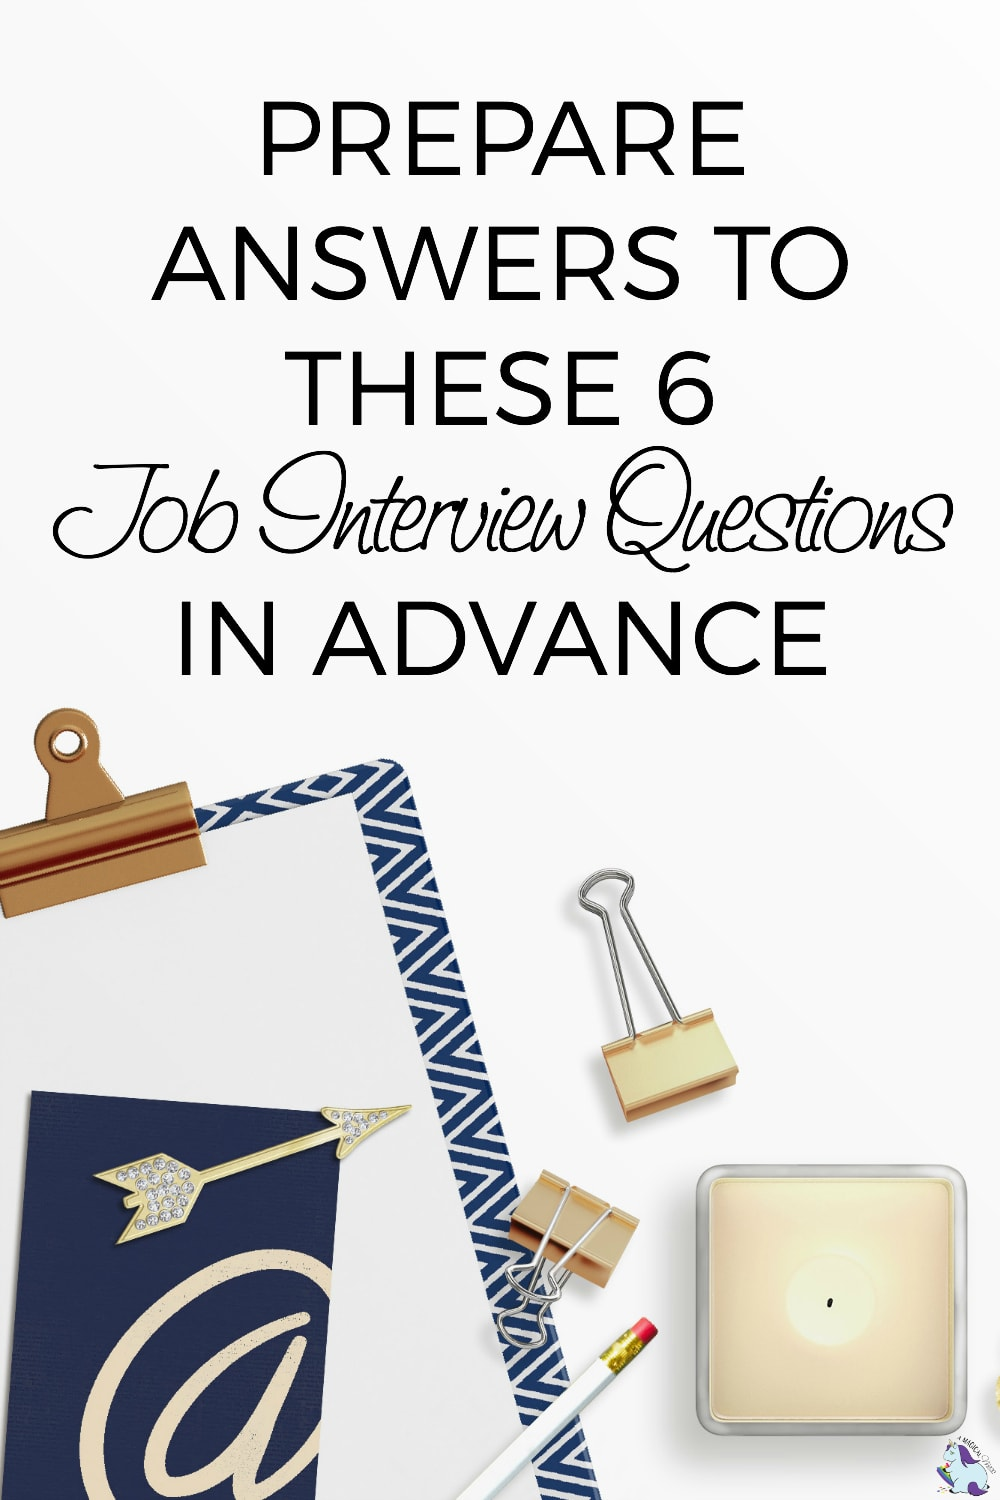 The Big 6 Job Interview Questions You'll Want to Prepare for in Advance #job #interview #questions #prepare